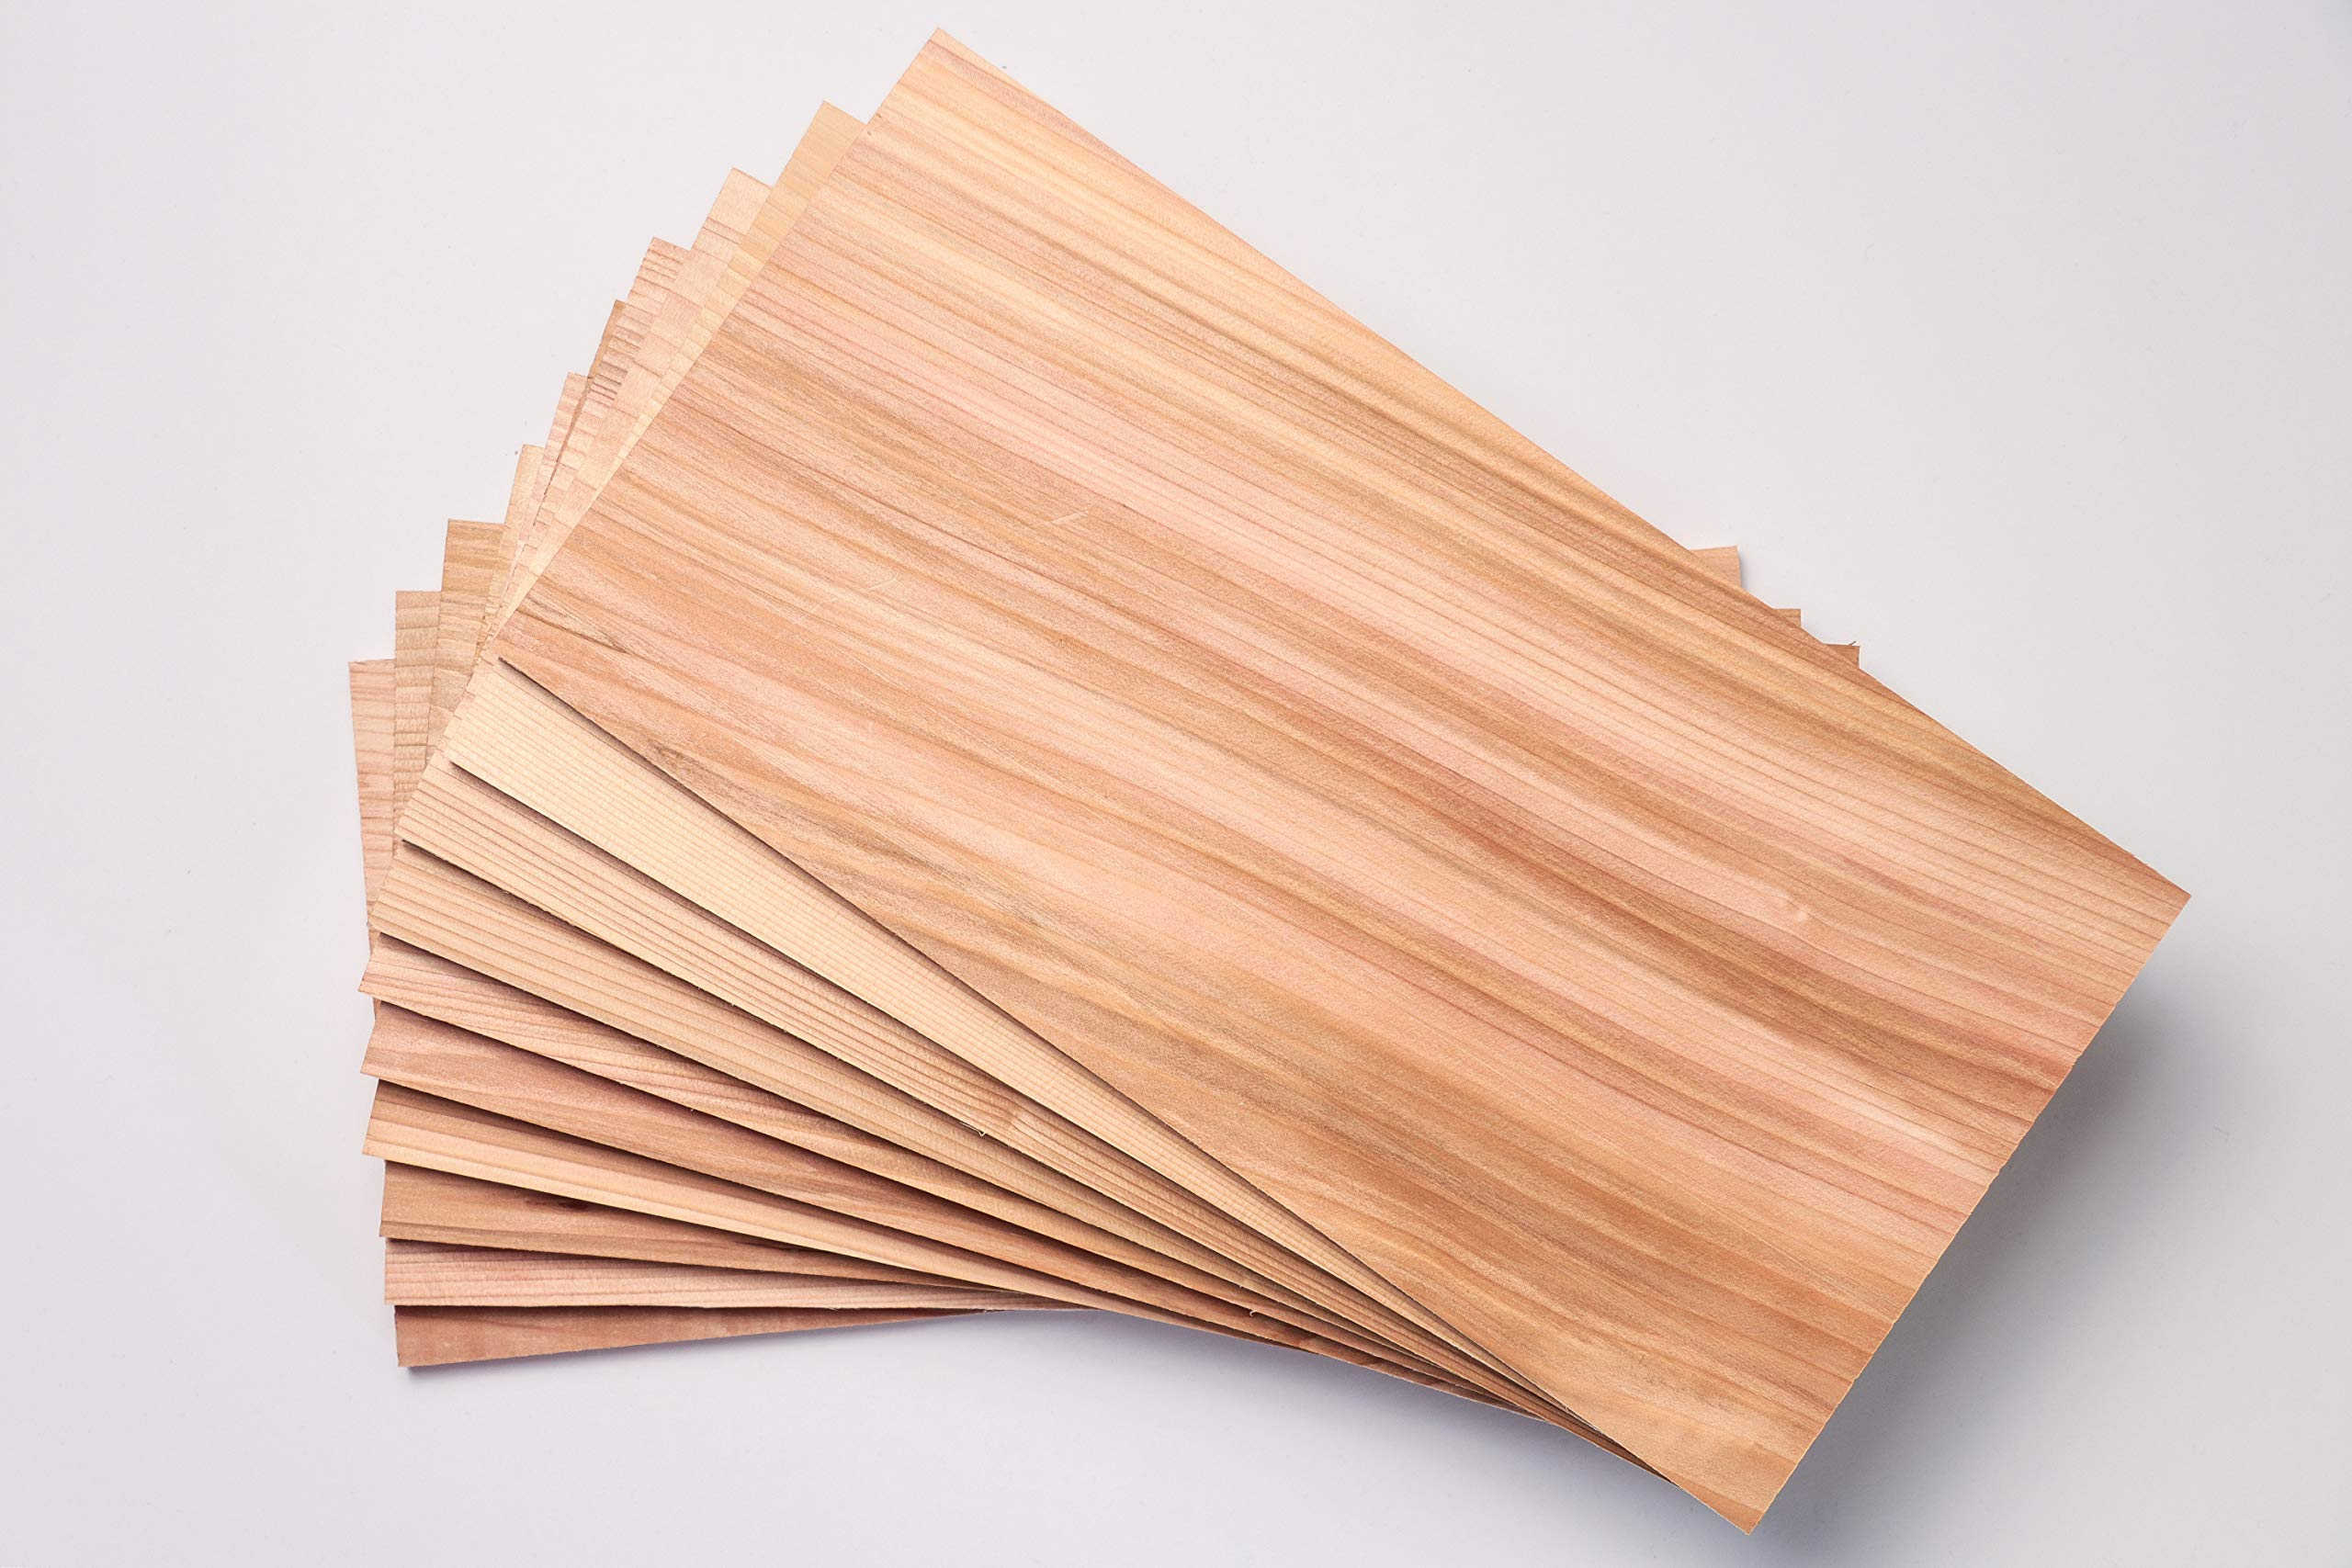 Premium Cedar Grilling Planks - 10 Pack 7'' x 14'' x 3/8 Thick. This is A True Western Red Cedar Grilling Plank Grown in The Pacific Northwest USA by Pacific Northwest Plank Company